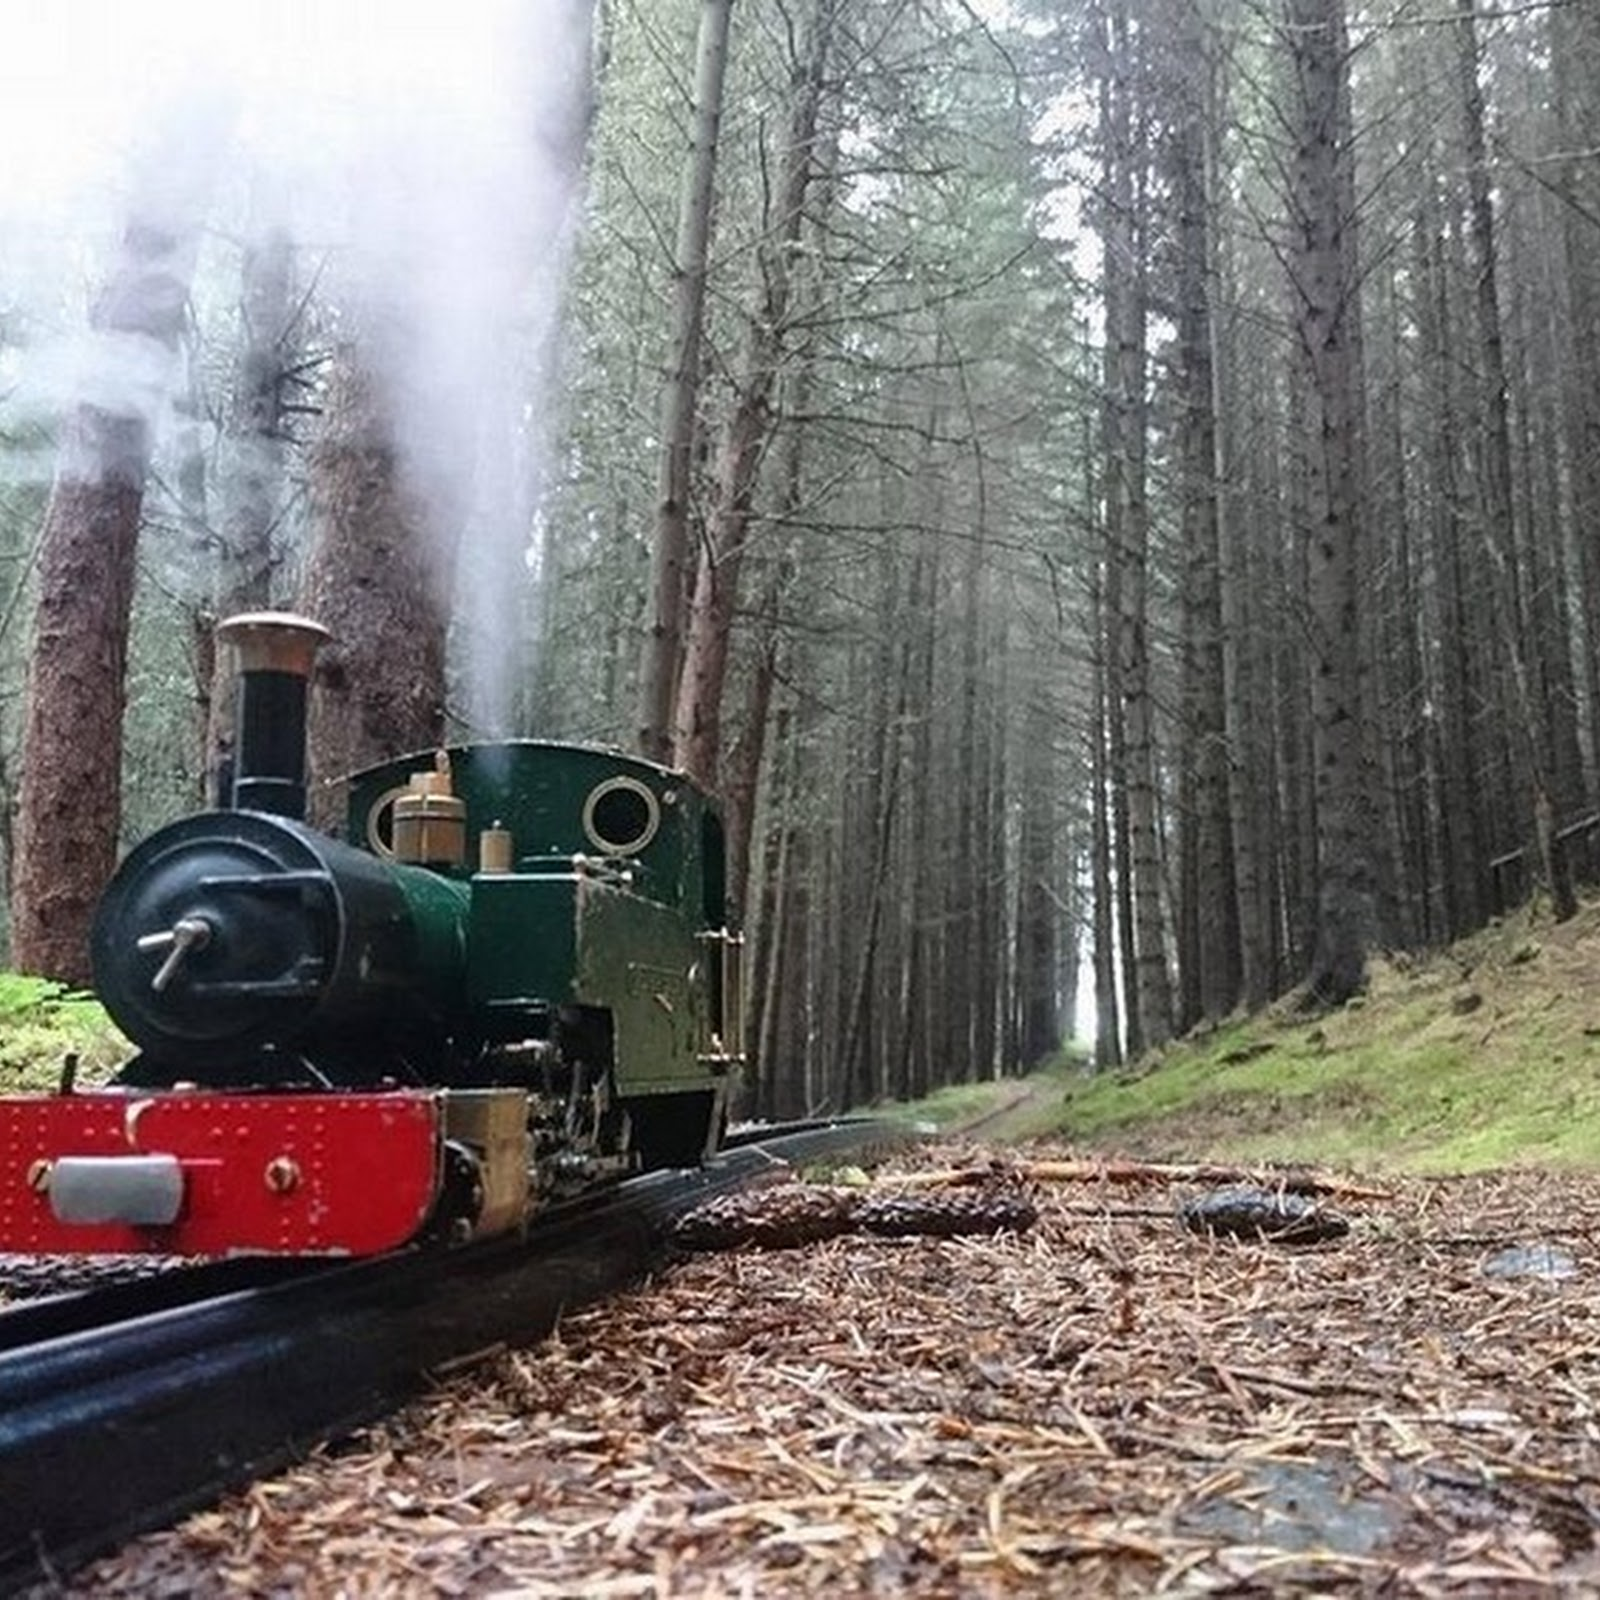 The Biggest Little Railway in the World